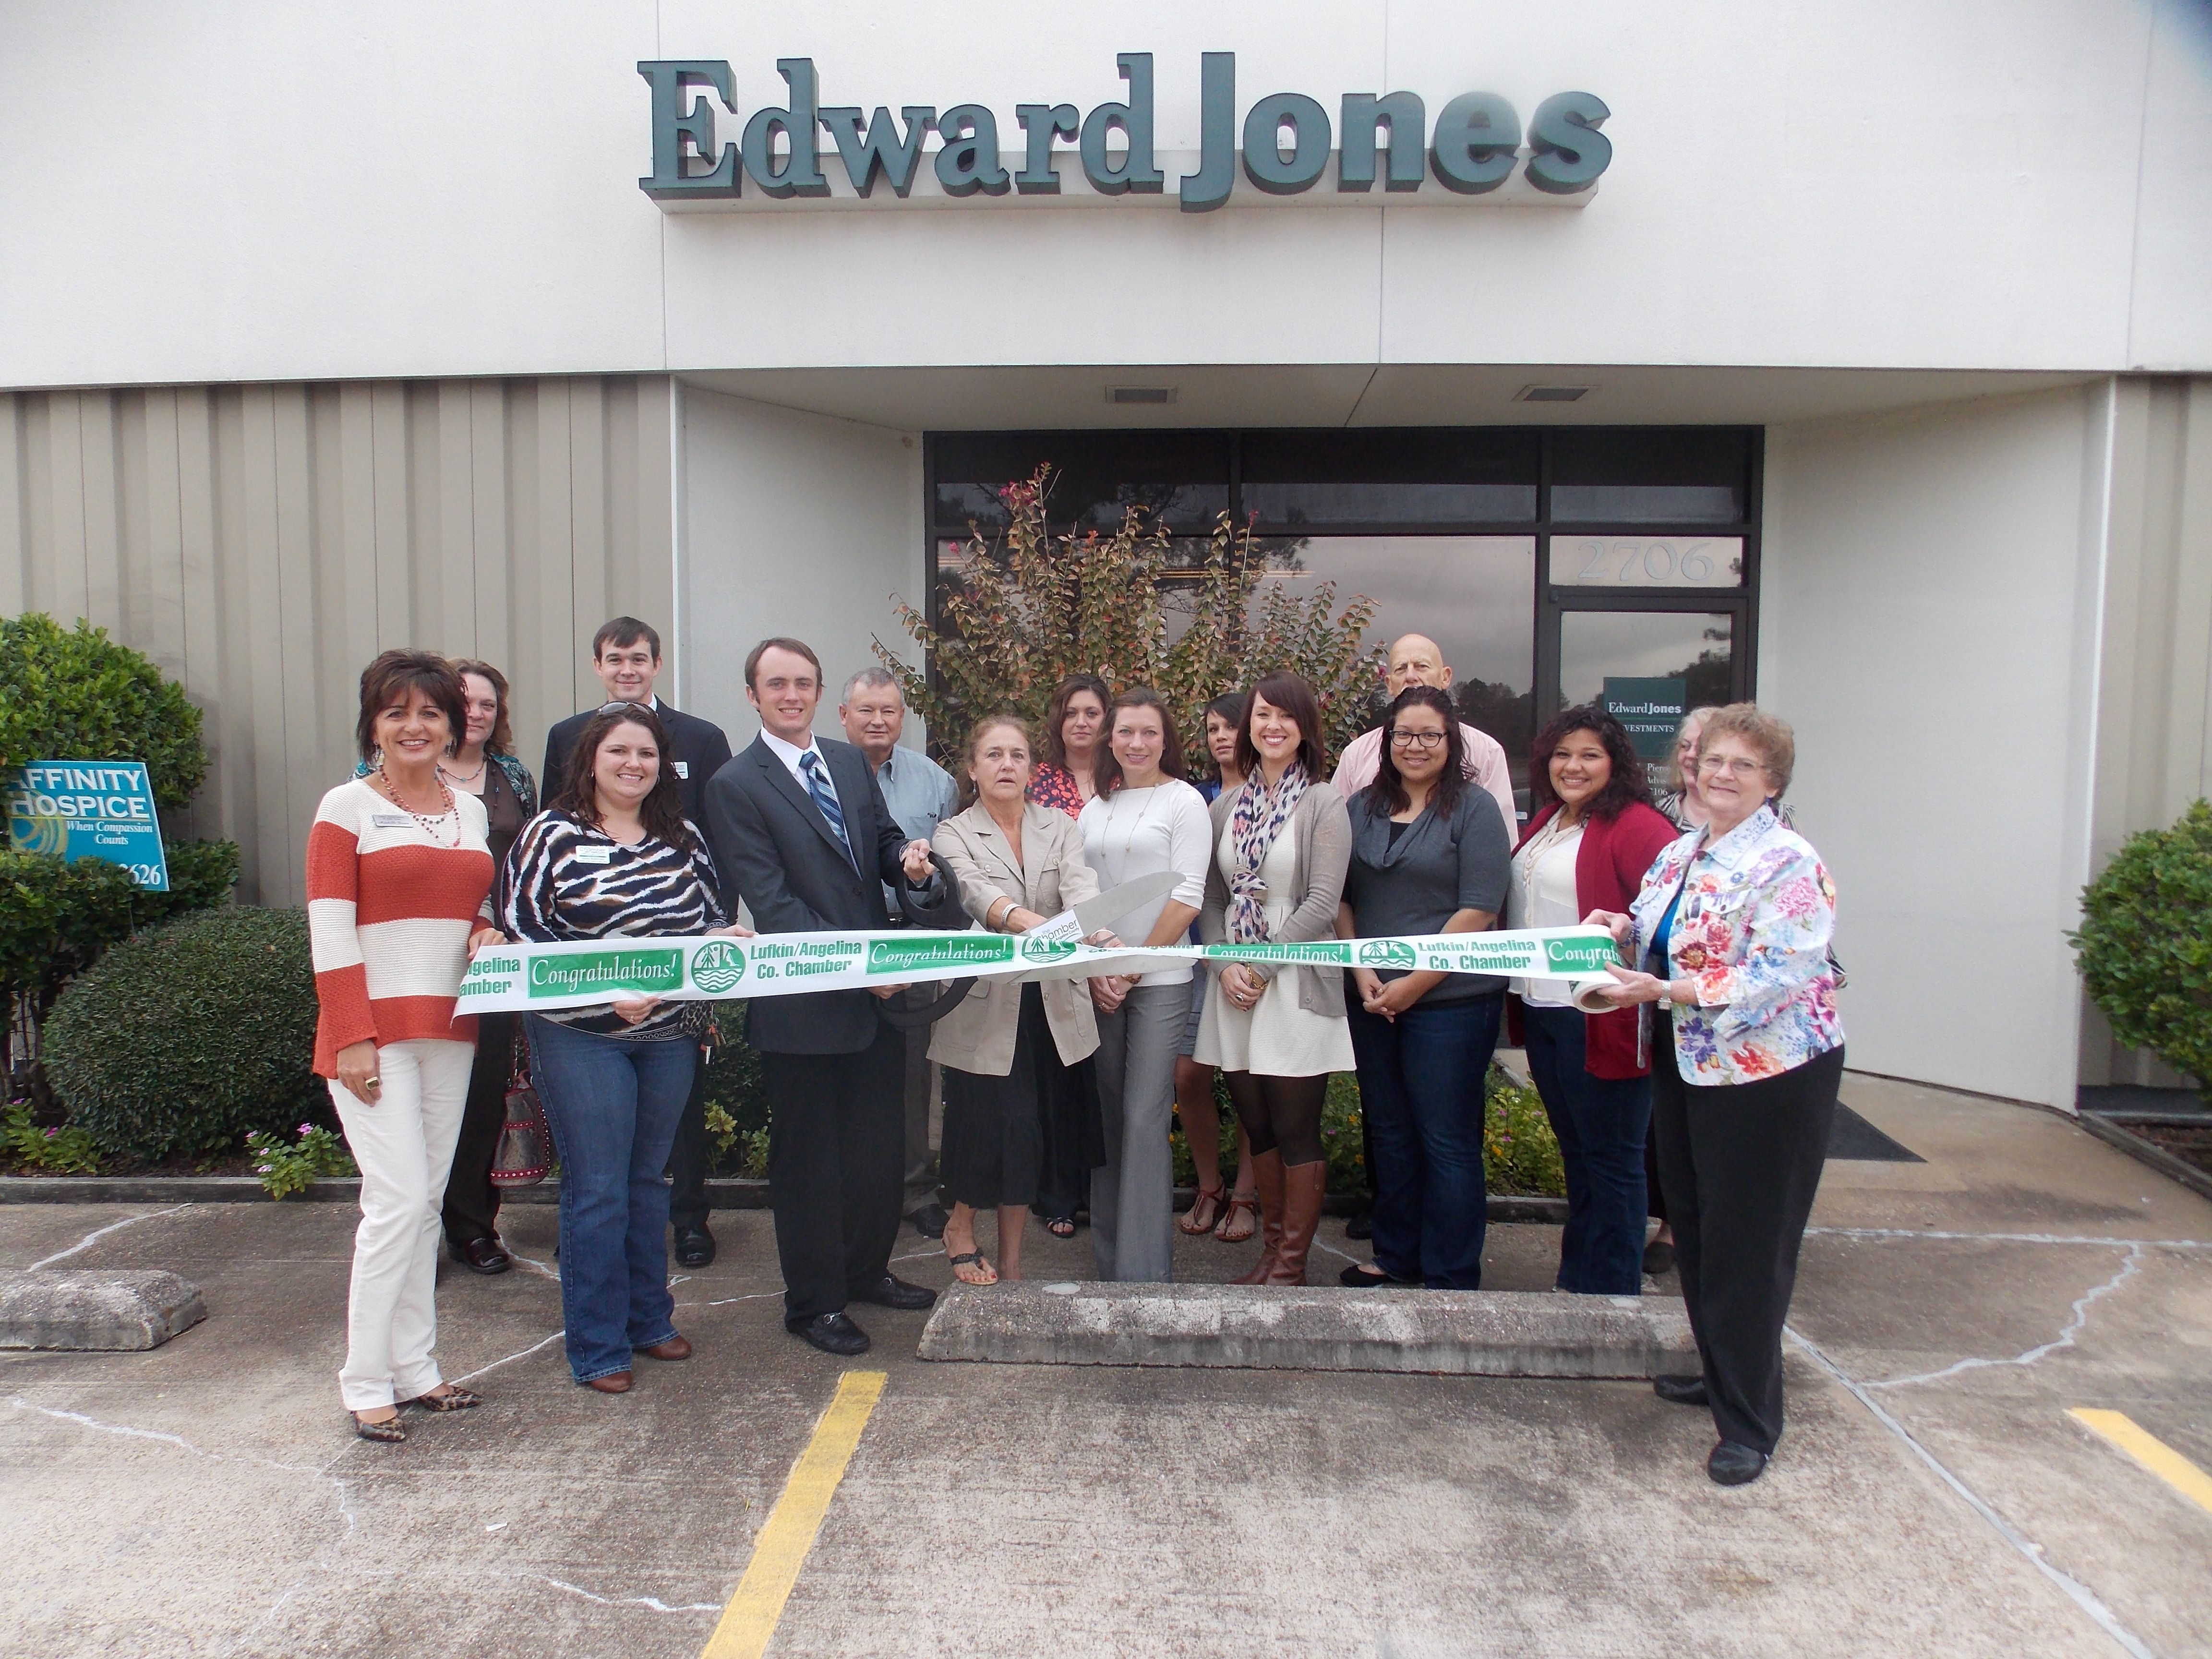 Welcoming Edward Jones Ryder Pierce Into The Lufkin Angelina County Chamber Of Commerce Lufkin Event Chamber Of Commerce